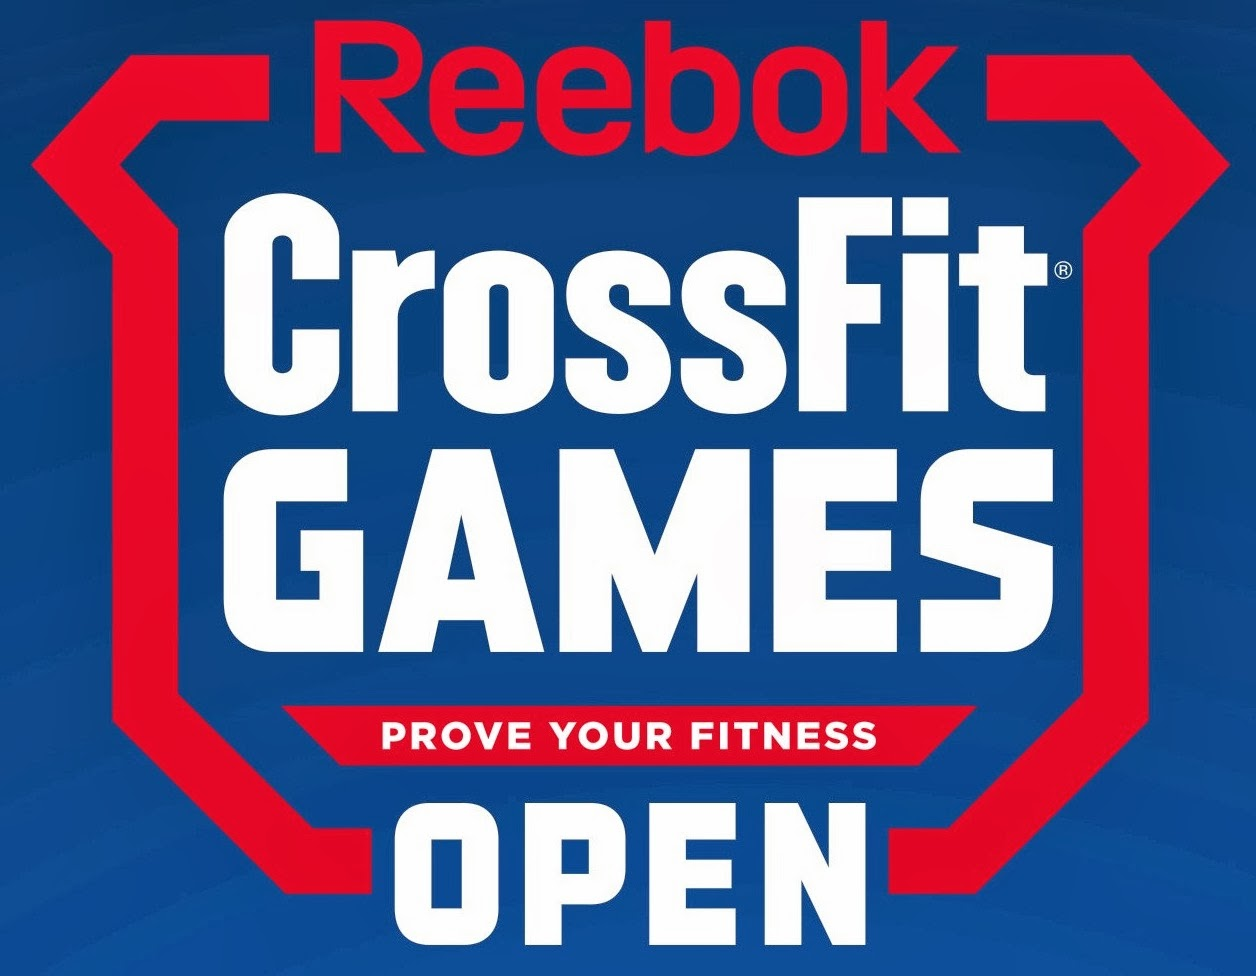 The 2018 CrossFit Games Open – CrossFit Amherst d21976493